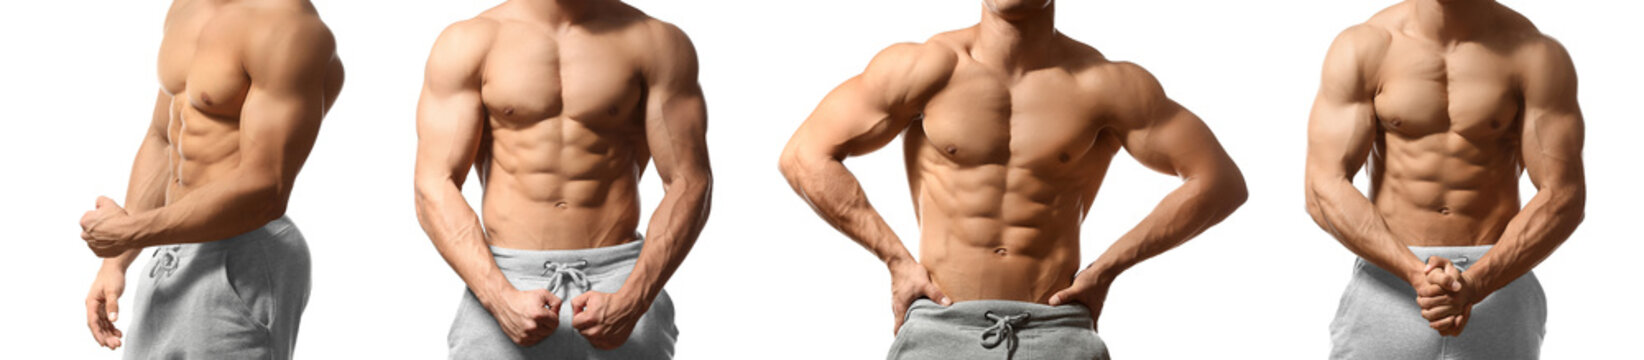 Collage with muscular young bodybuilder on white background